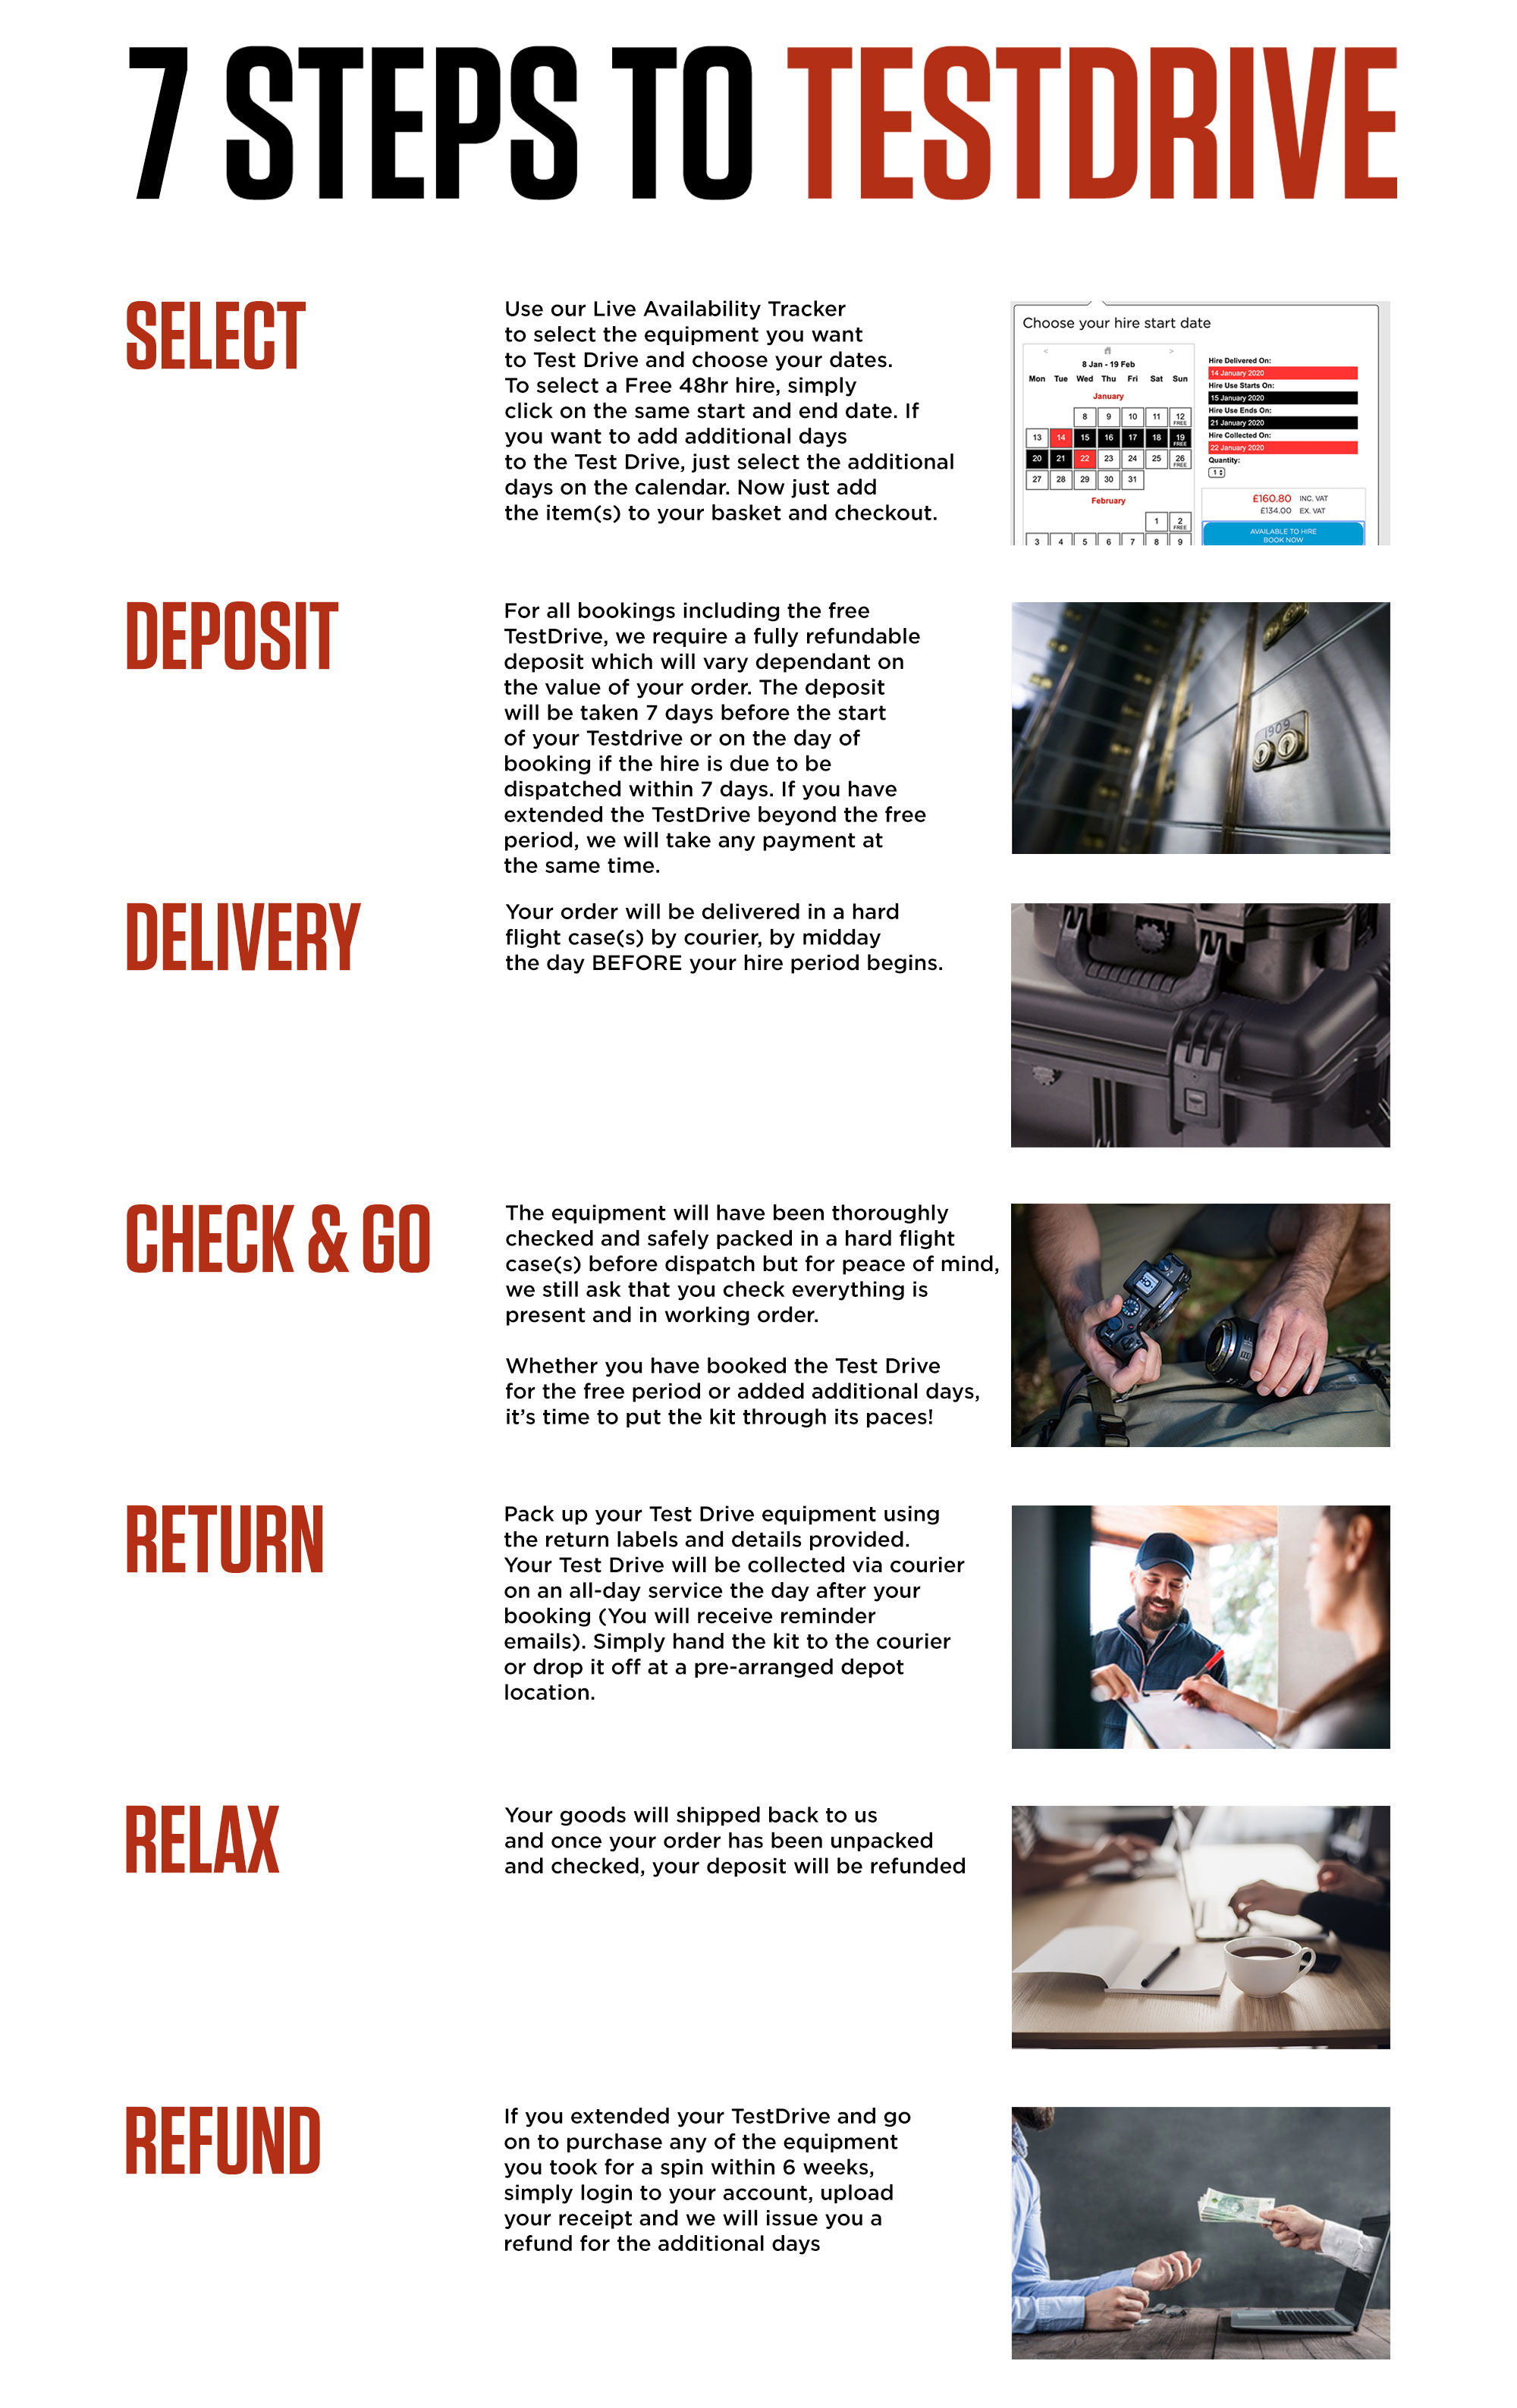 7 Steps to Test Drive